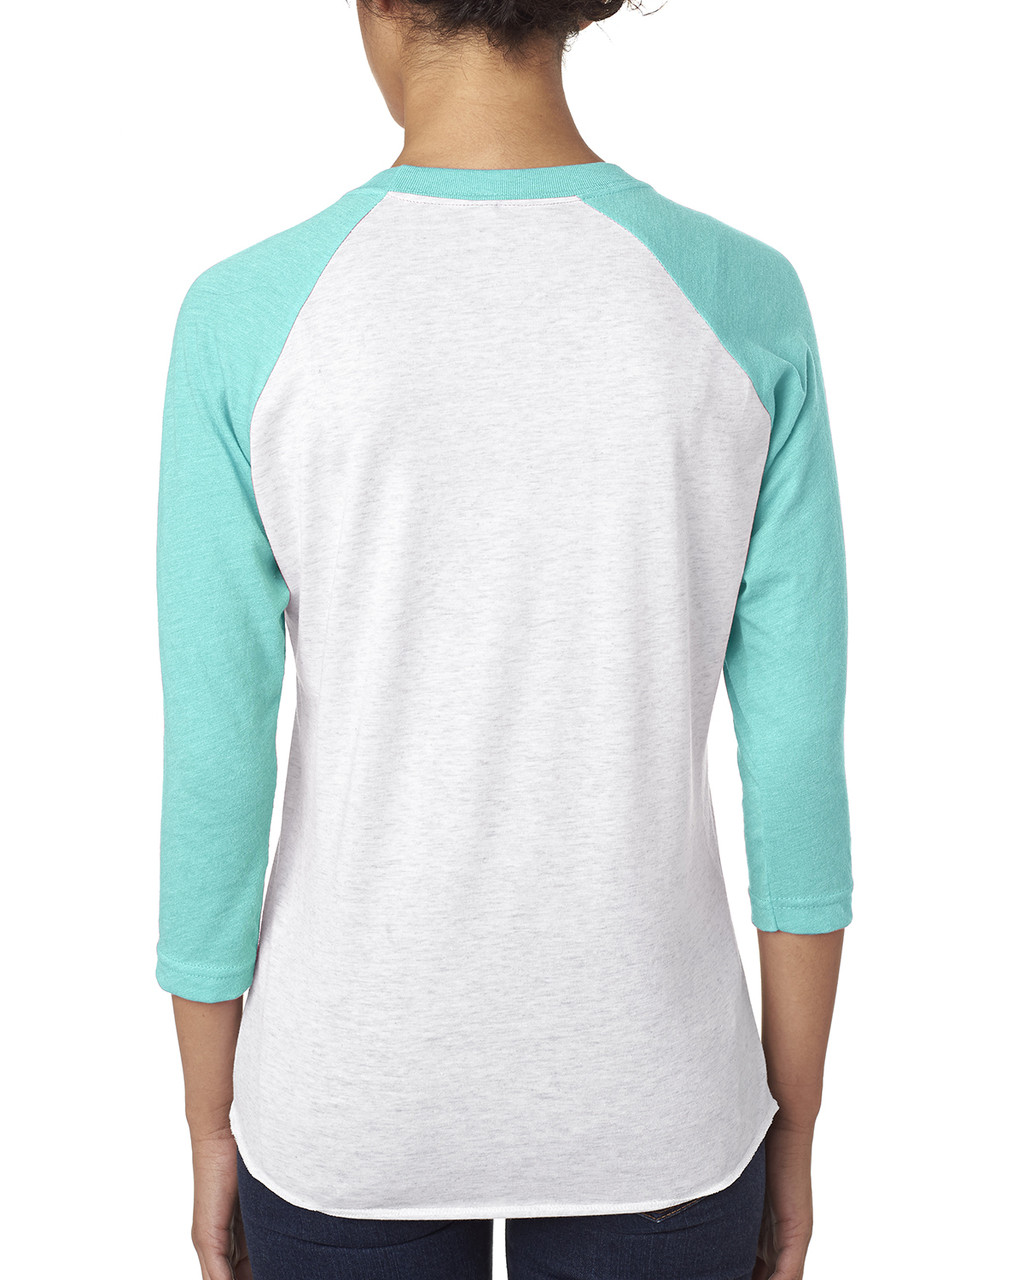 Tahiti Blue/Heather White - back 6051 Next Level Unisex Tri-Blend 3/4-Sleeve Raglan Tee | Blankclothing.ca